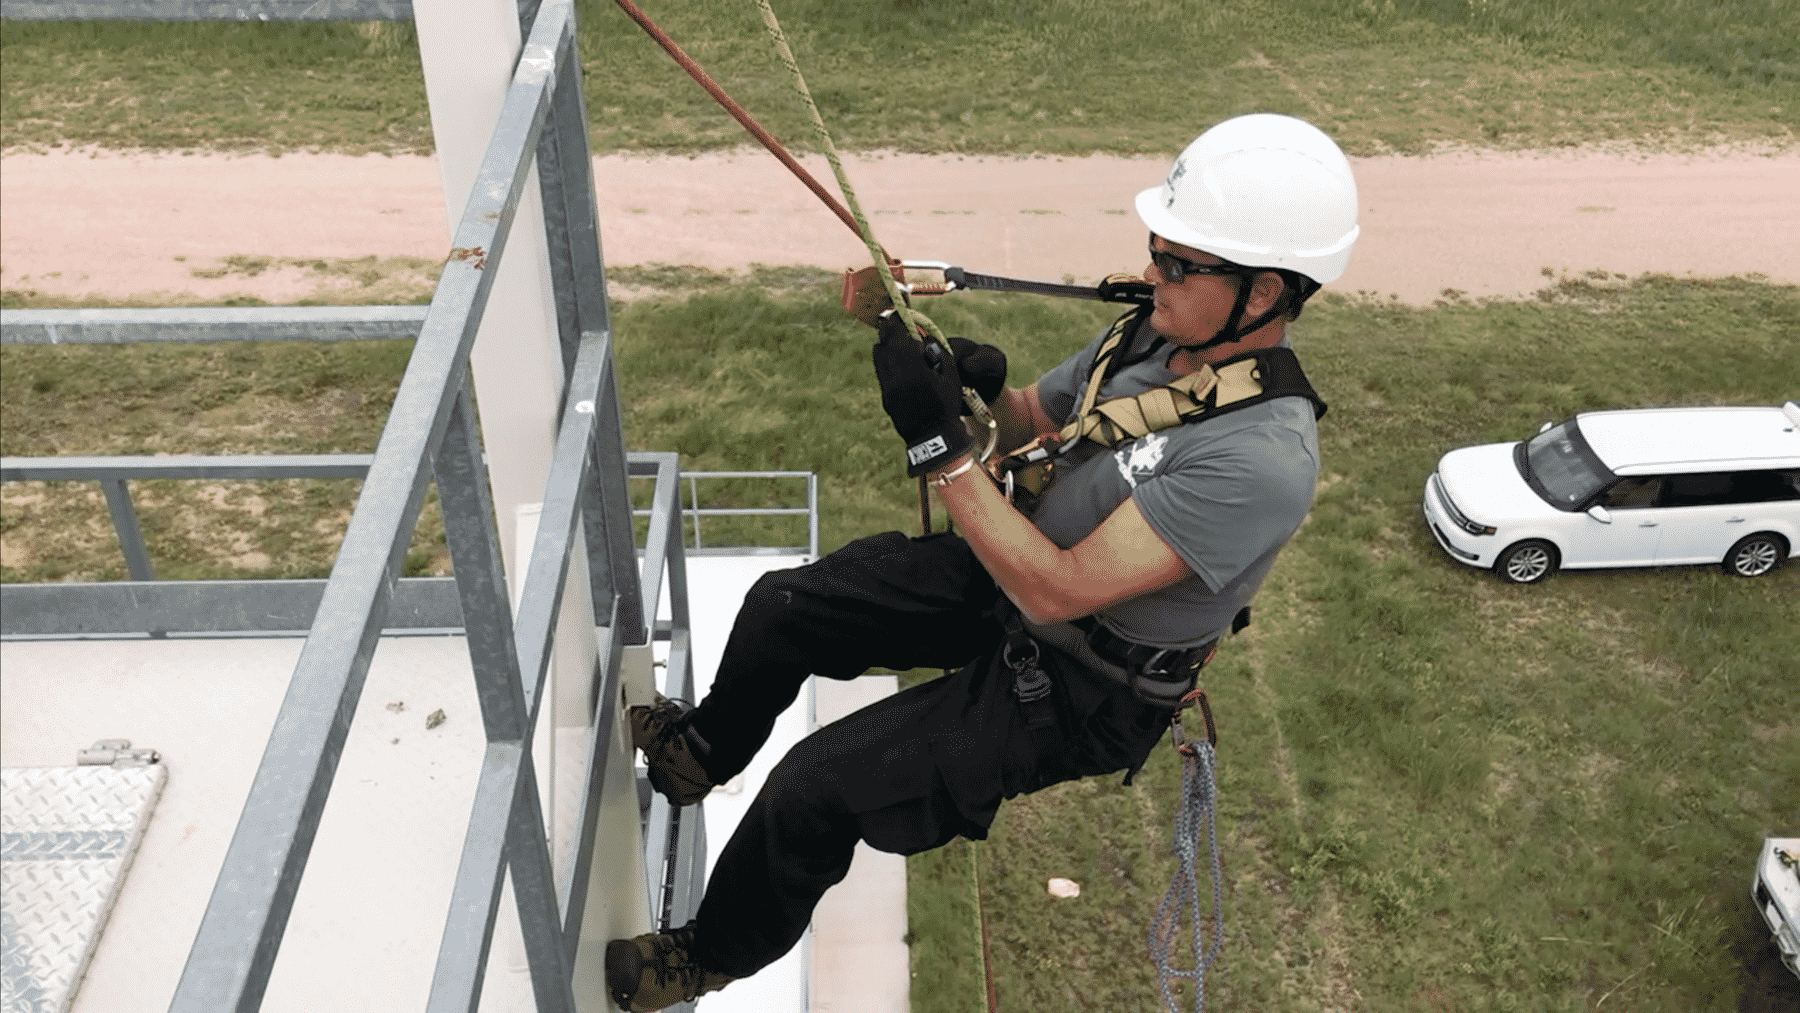 Steve Blauser, Confined Space Operations Manager, during Confined Space Rescue Training with the Air Force.